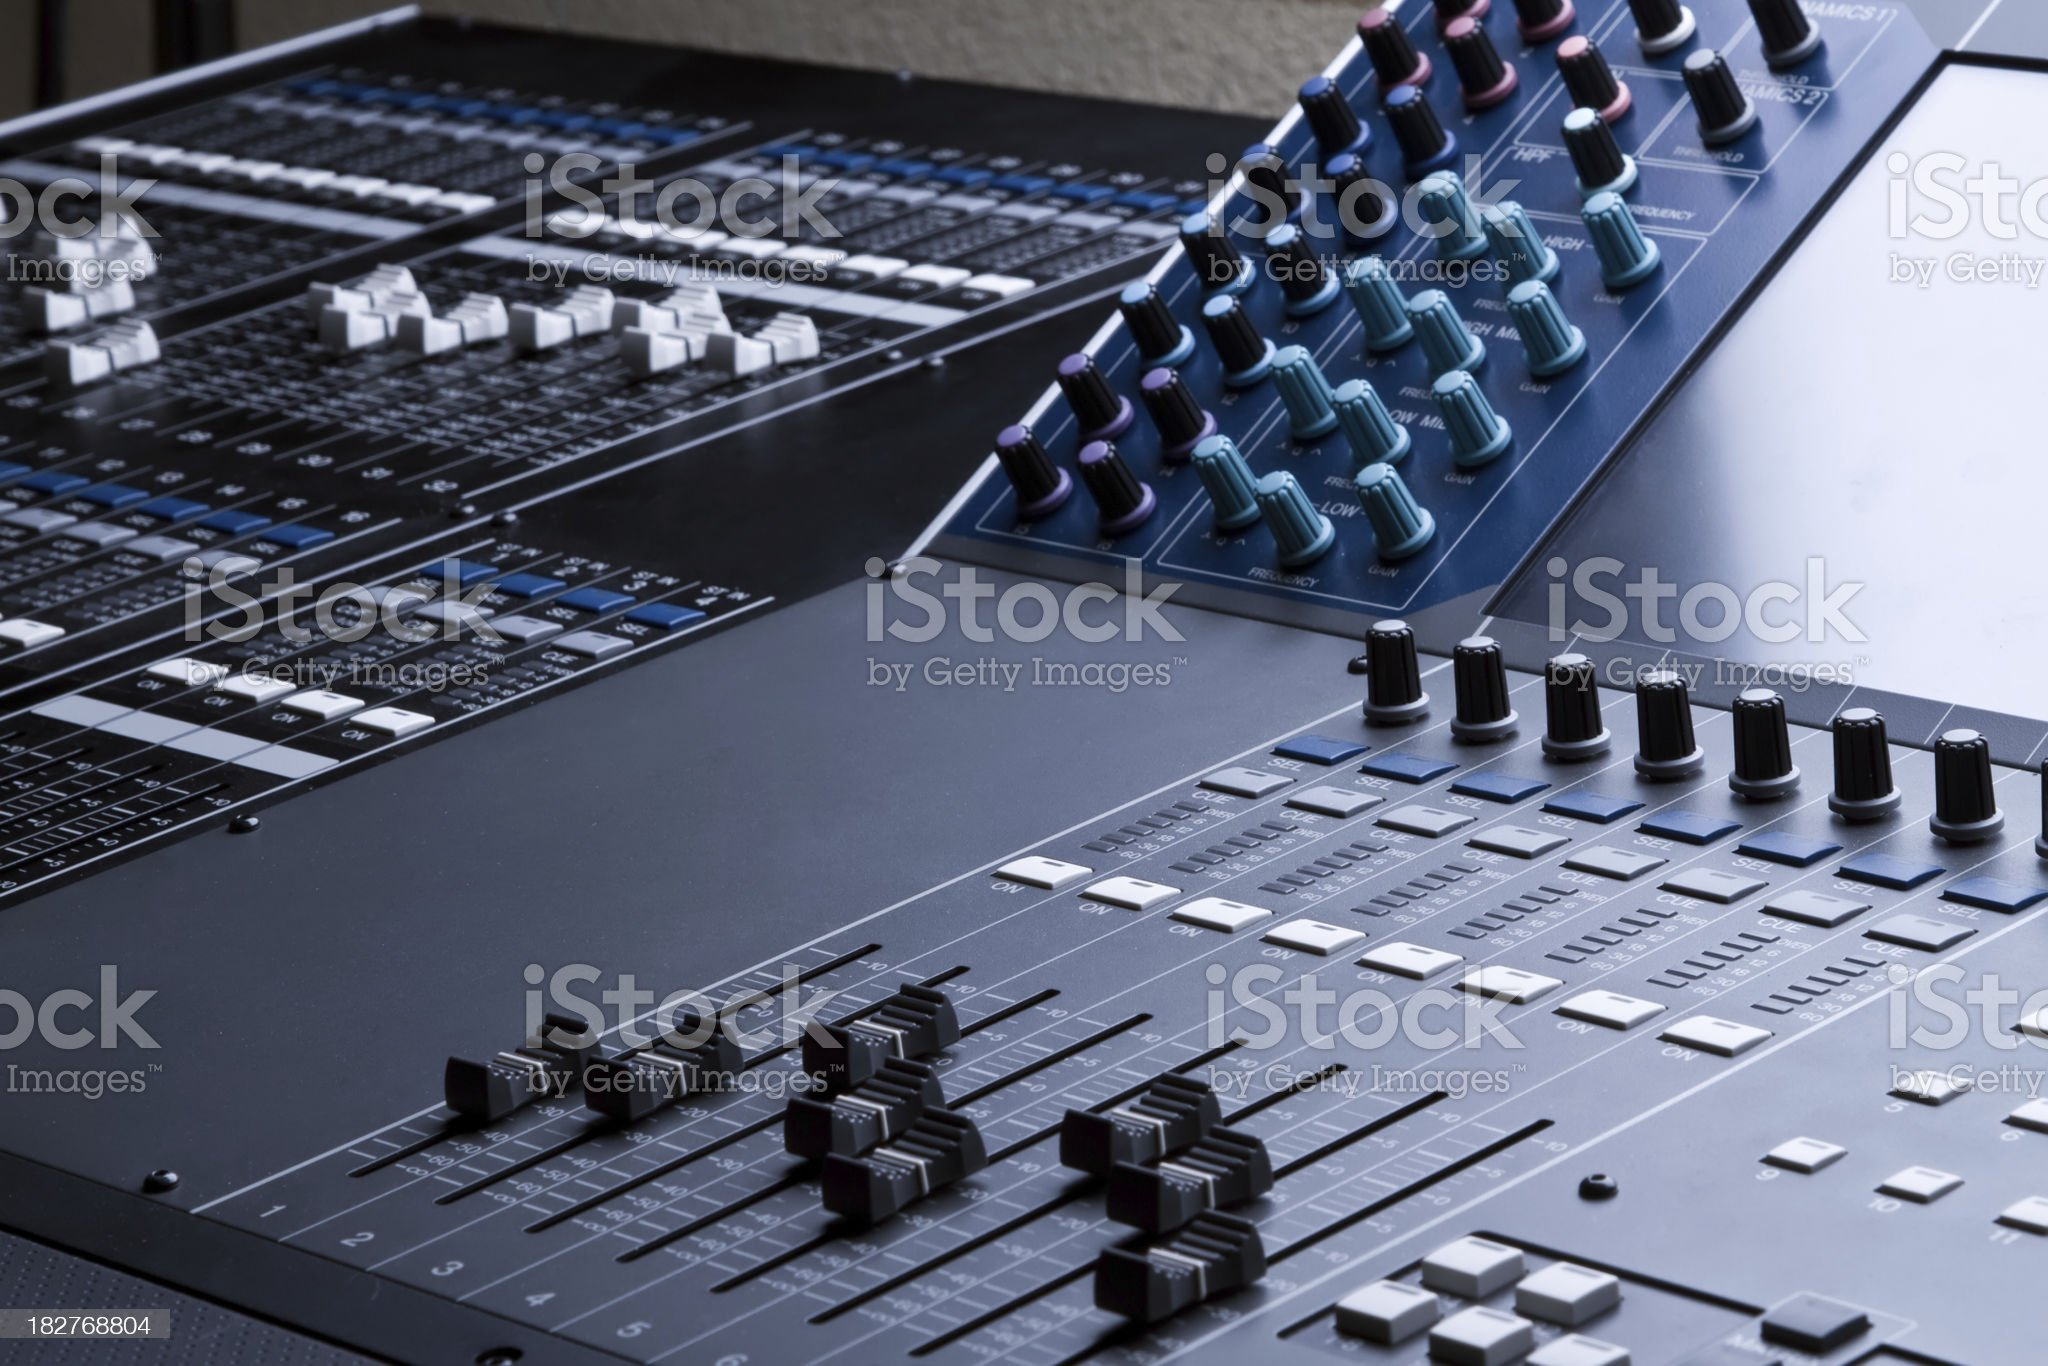 Professional Digital Sound and Recording Console royalty-free stock photo